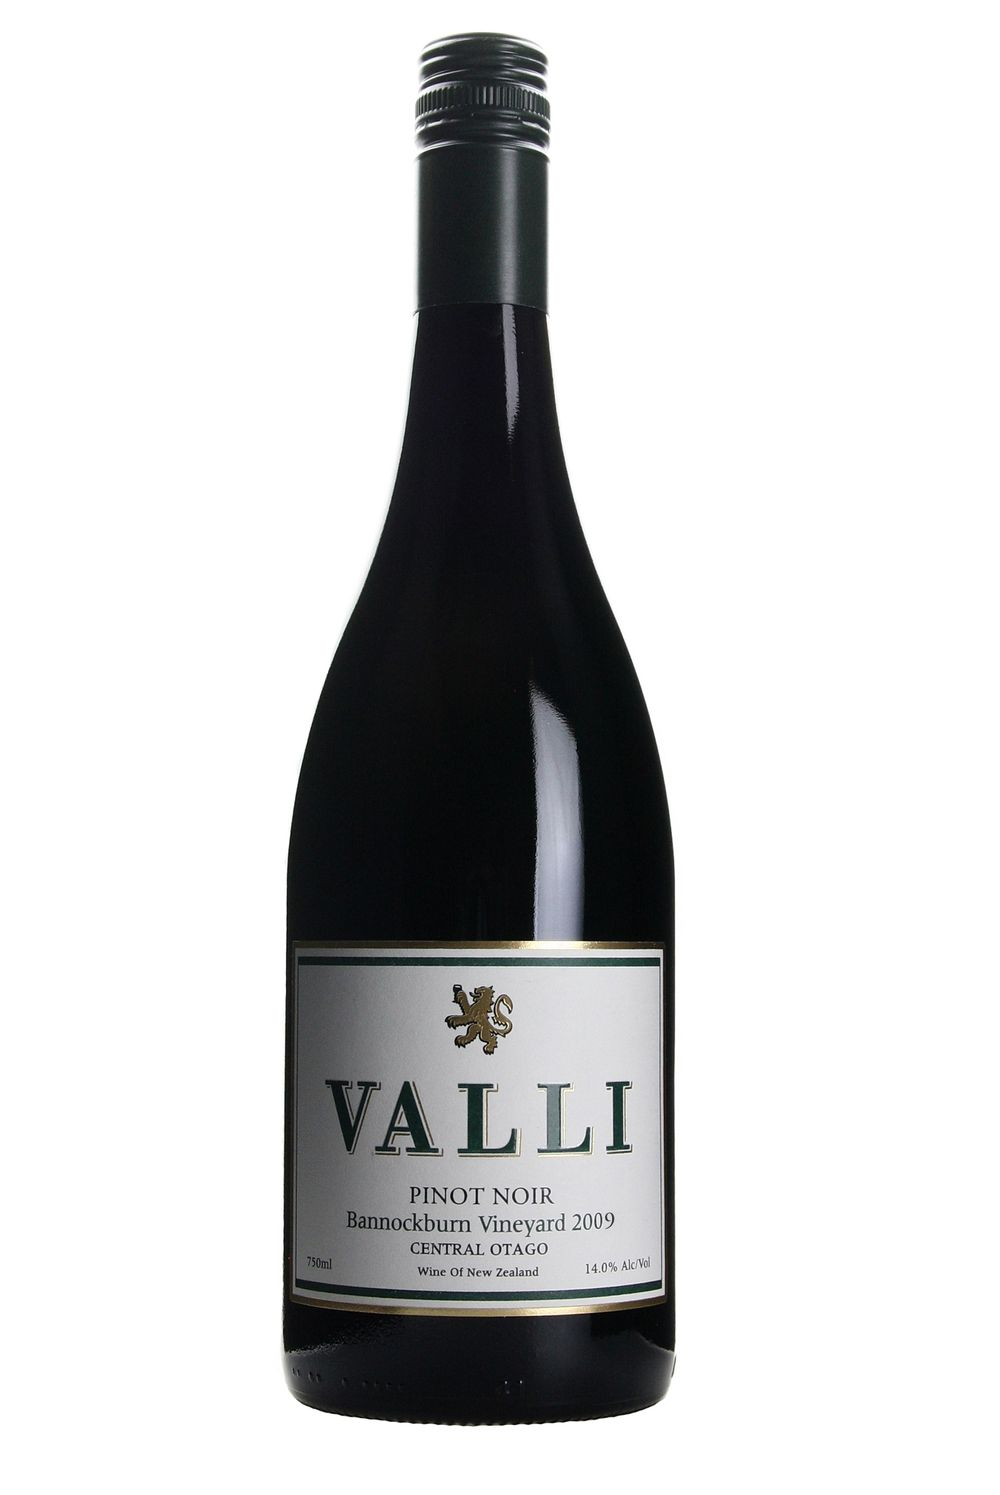 Valli Bannockburn Vineyard Pinot Noir 2009